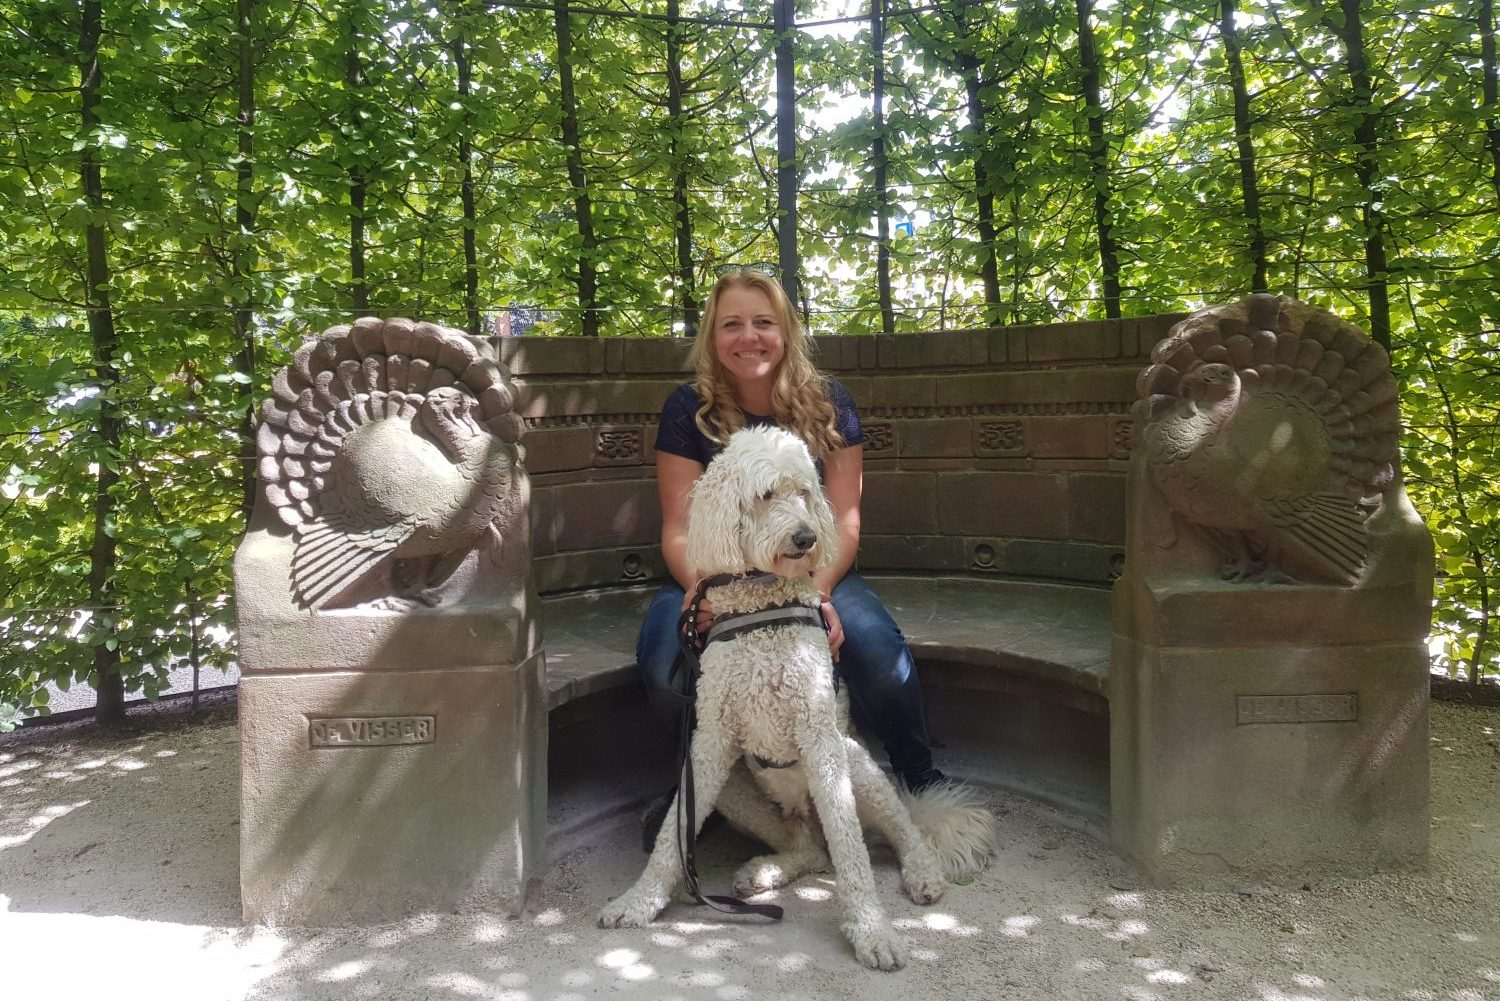 Danielle and assistance dog Noah at Rijksmuseum tour for the blind